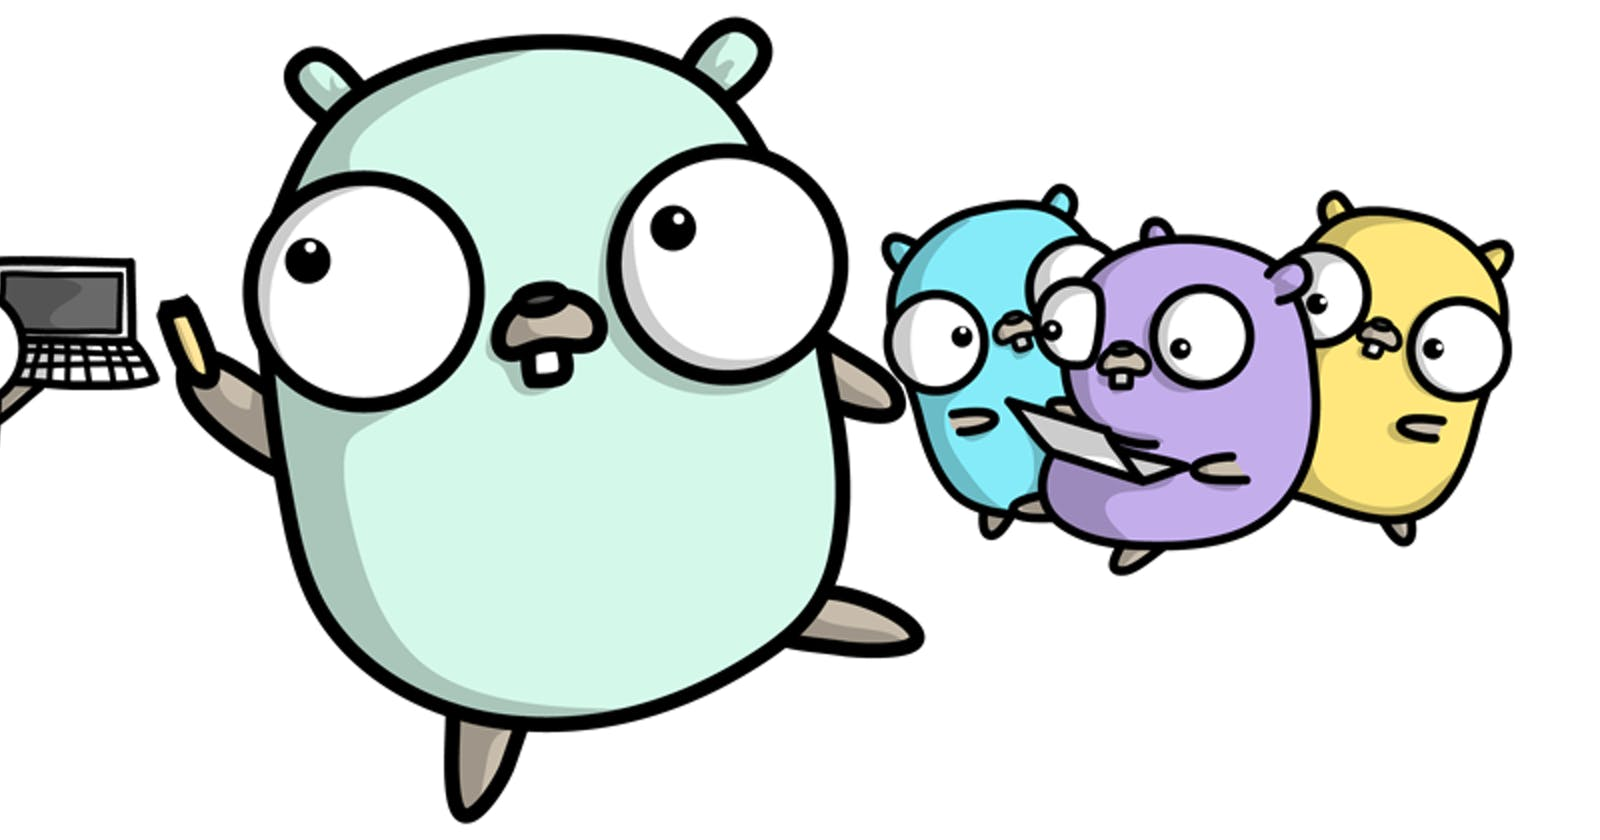 Golang - all you need to know